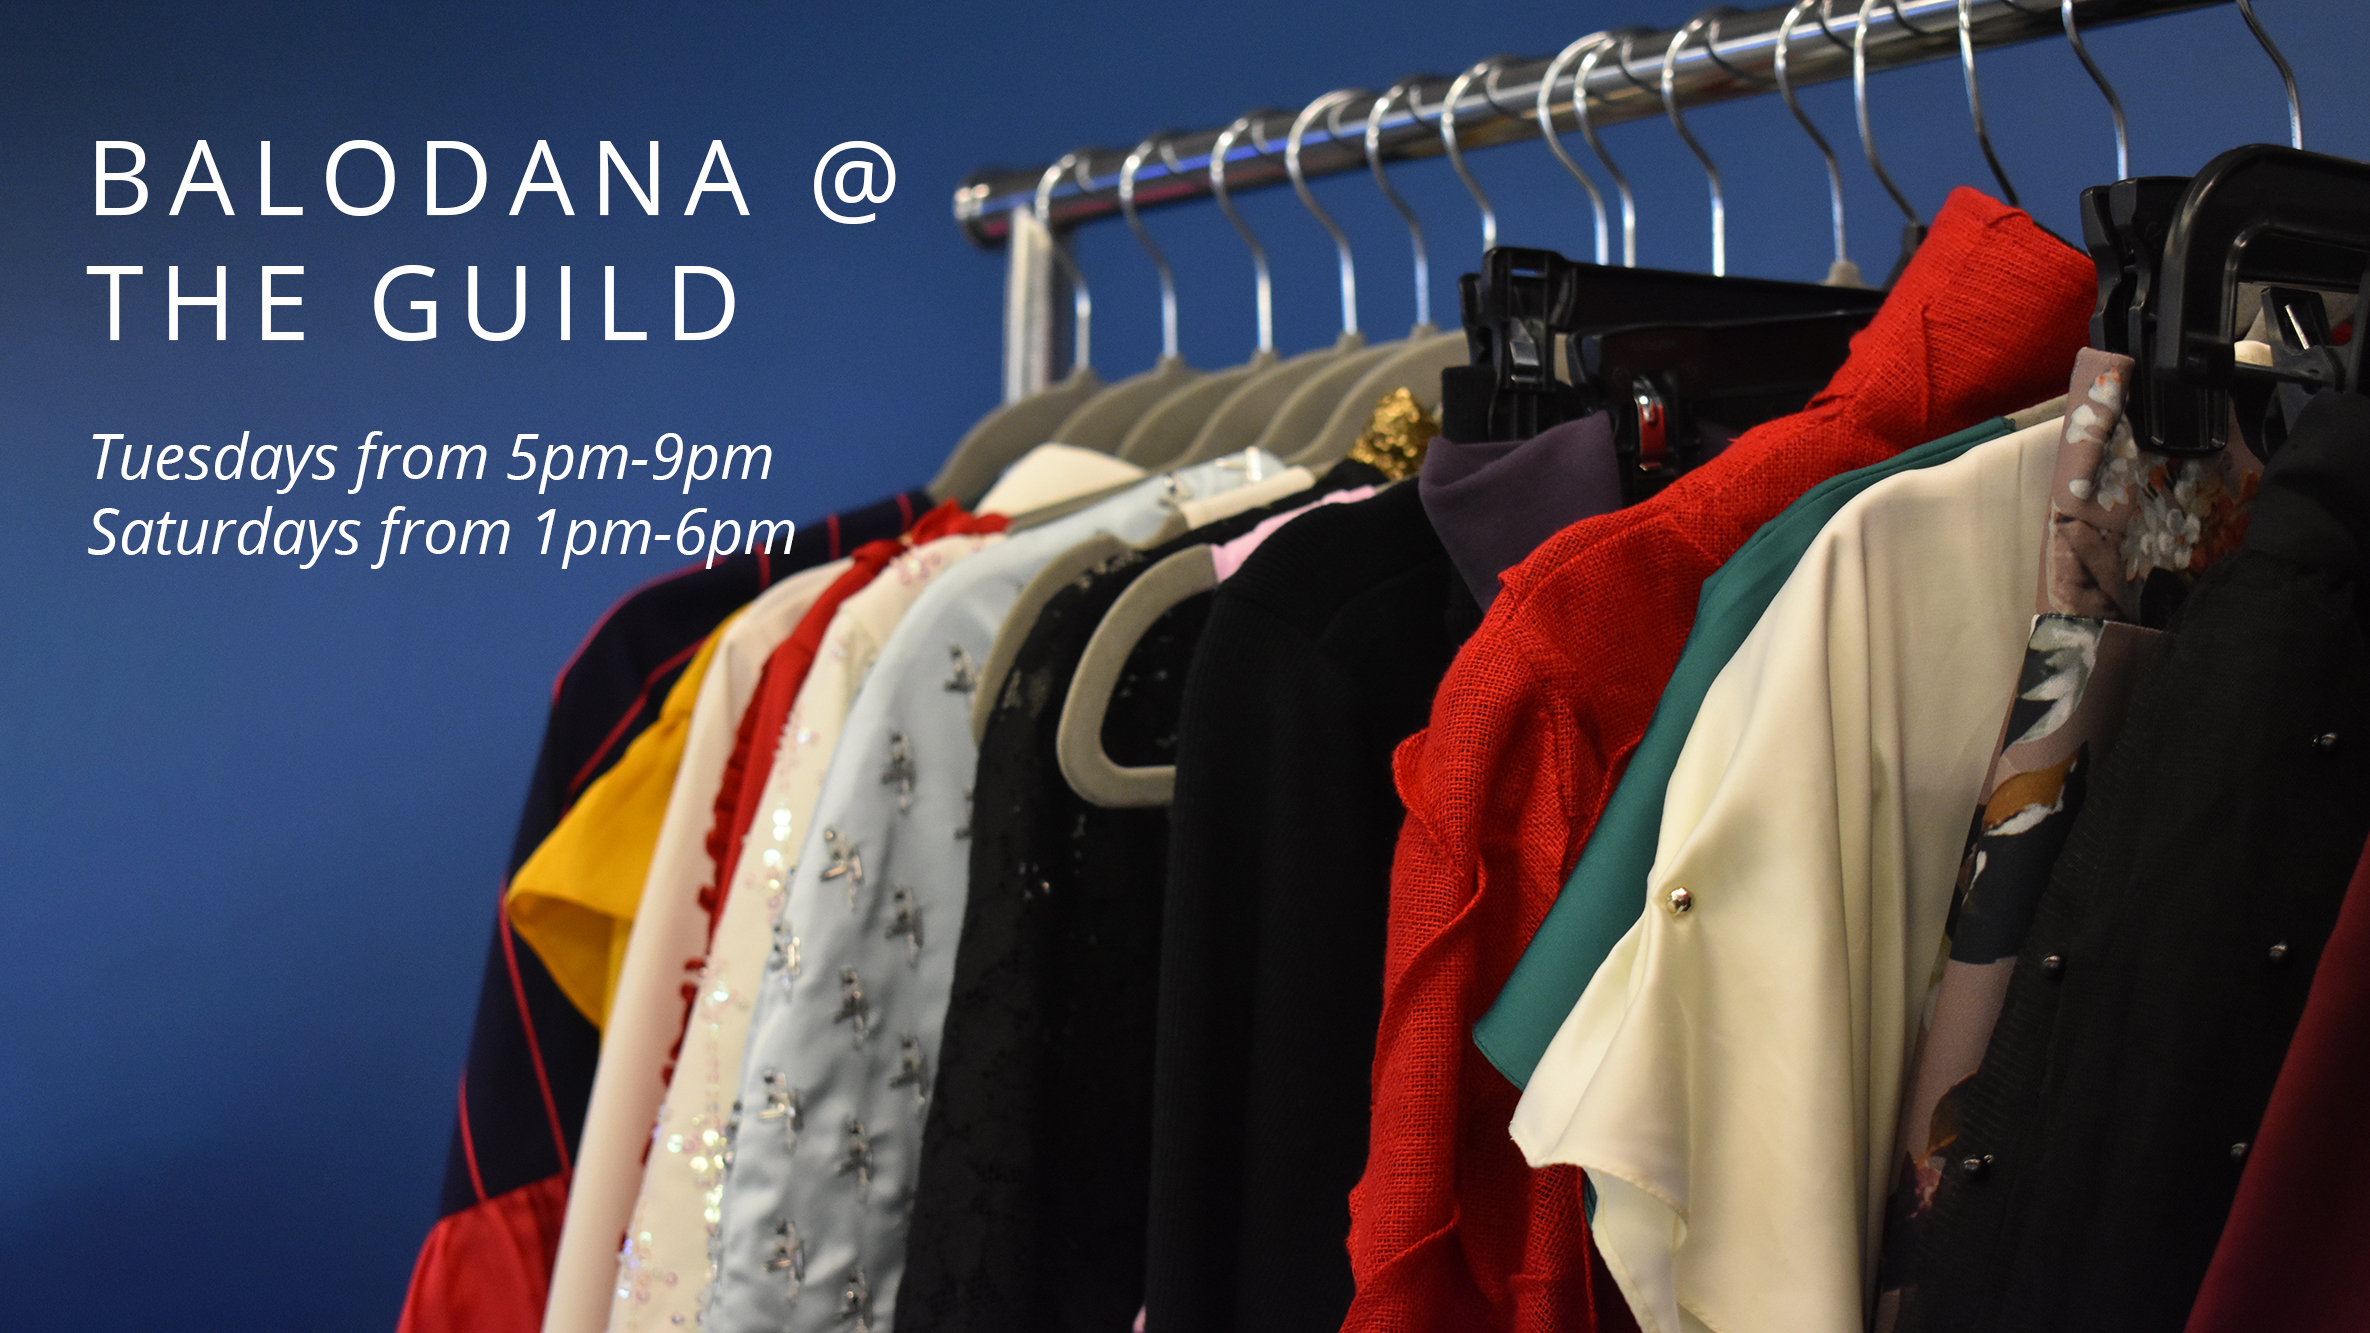 Balodana at The Guild (Trunk Show & Free Measurements)